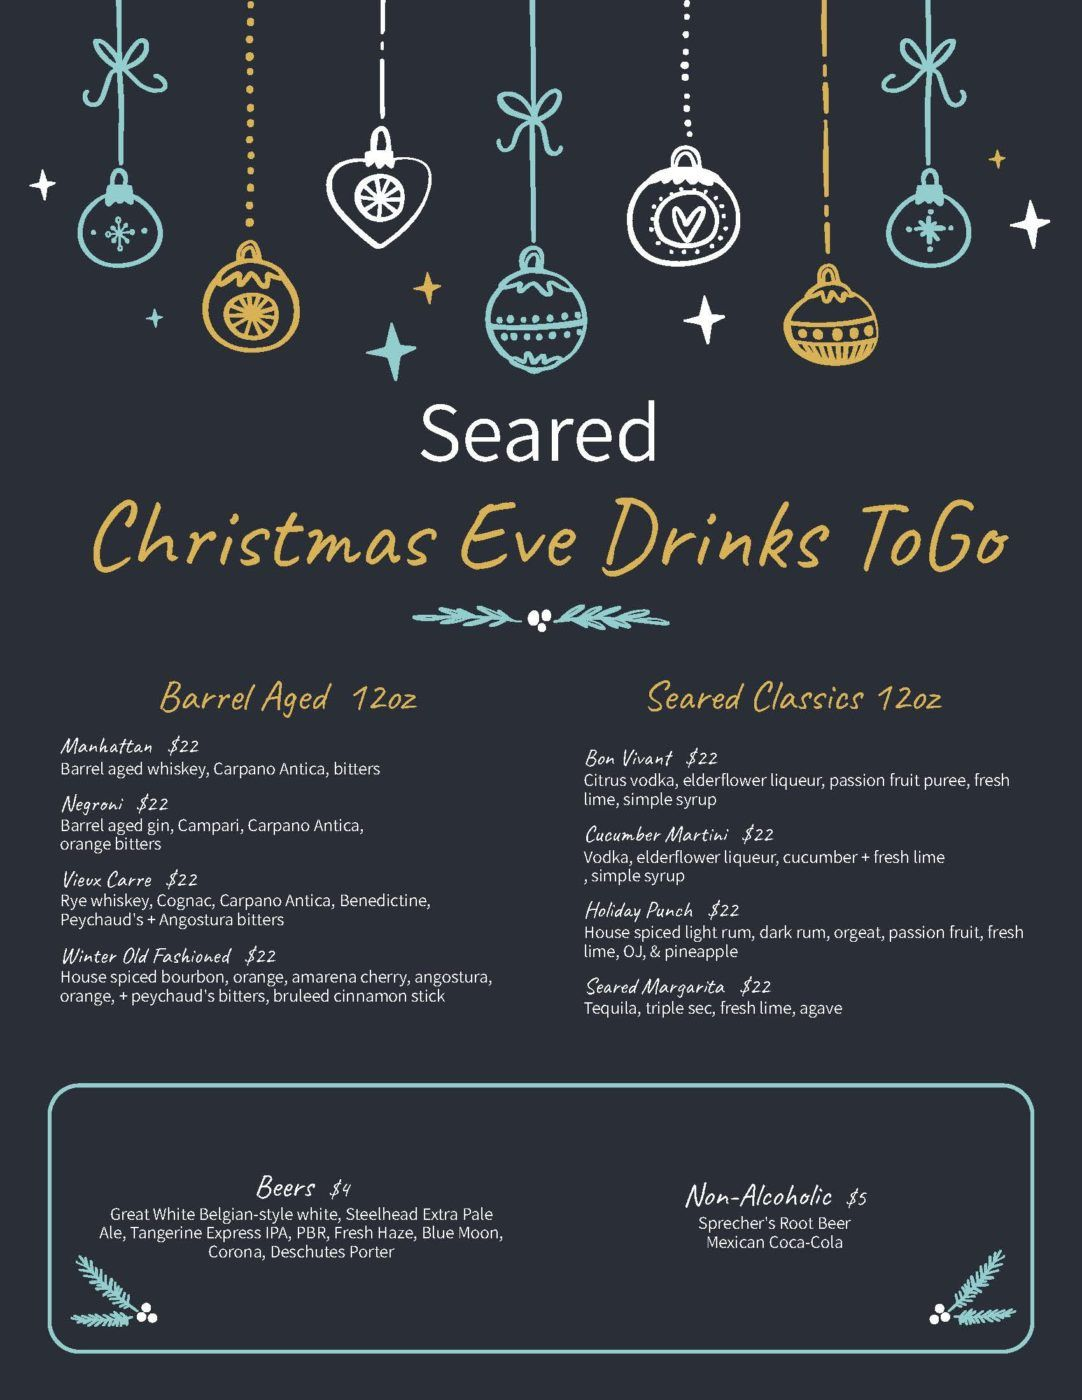 Christmas Eve Drinks and Cocktails to-go from Seared